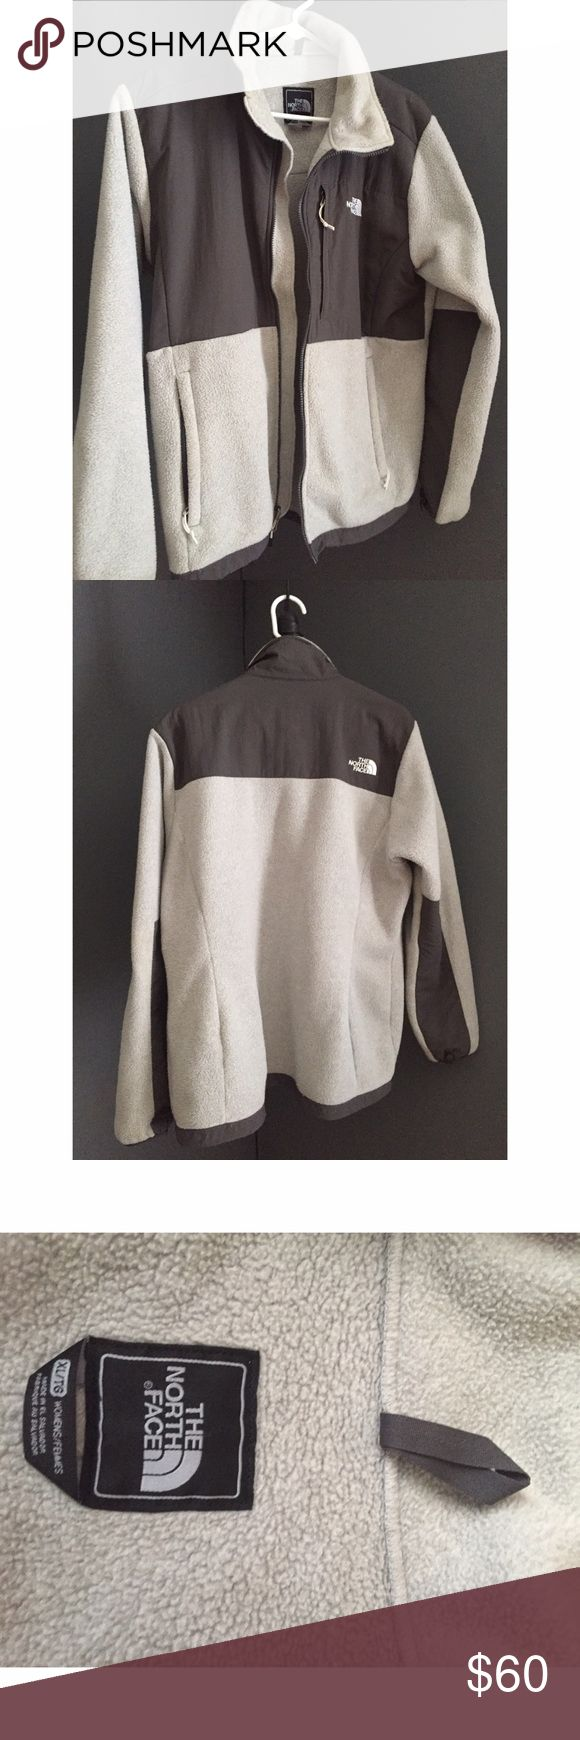 The North Face Jacket Lightly worn north face jacket The North Face Jackets & Coats